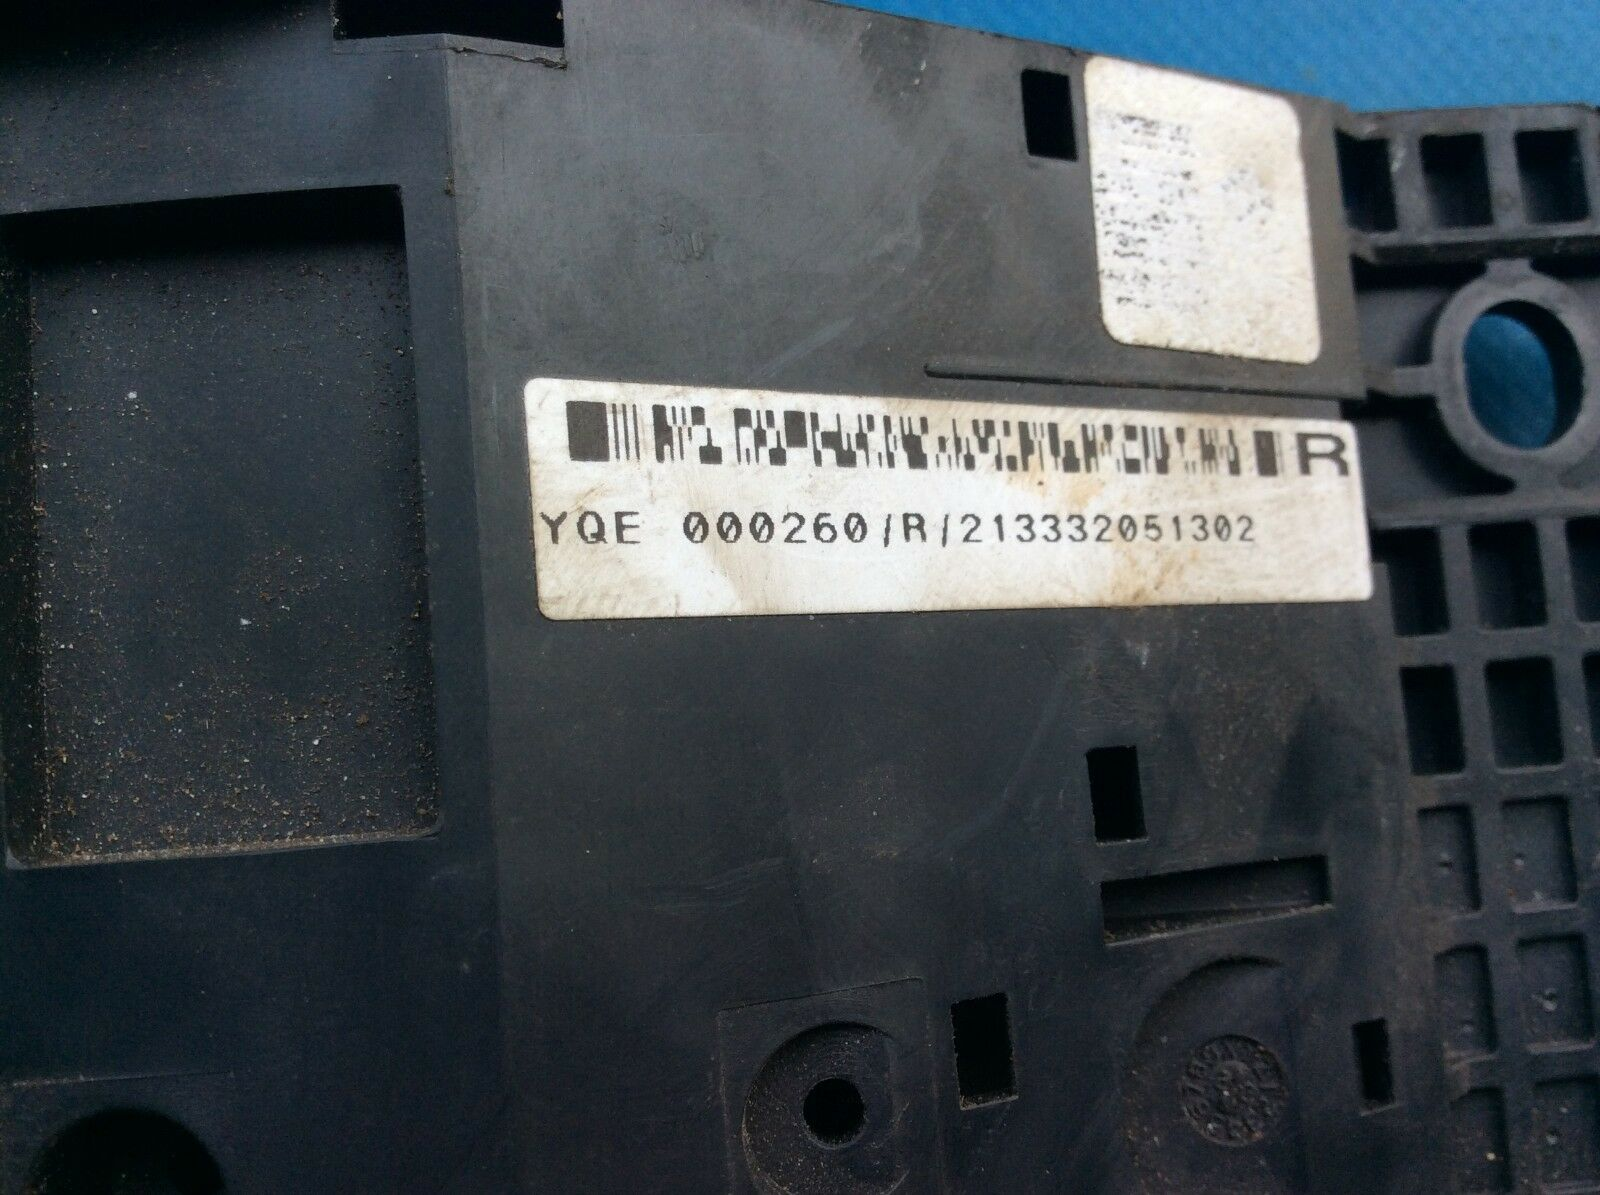 hight resolution of land rover freelander engine bay fuse box part yqe000260